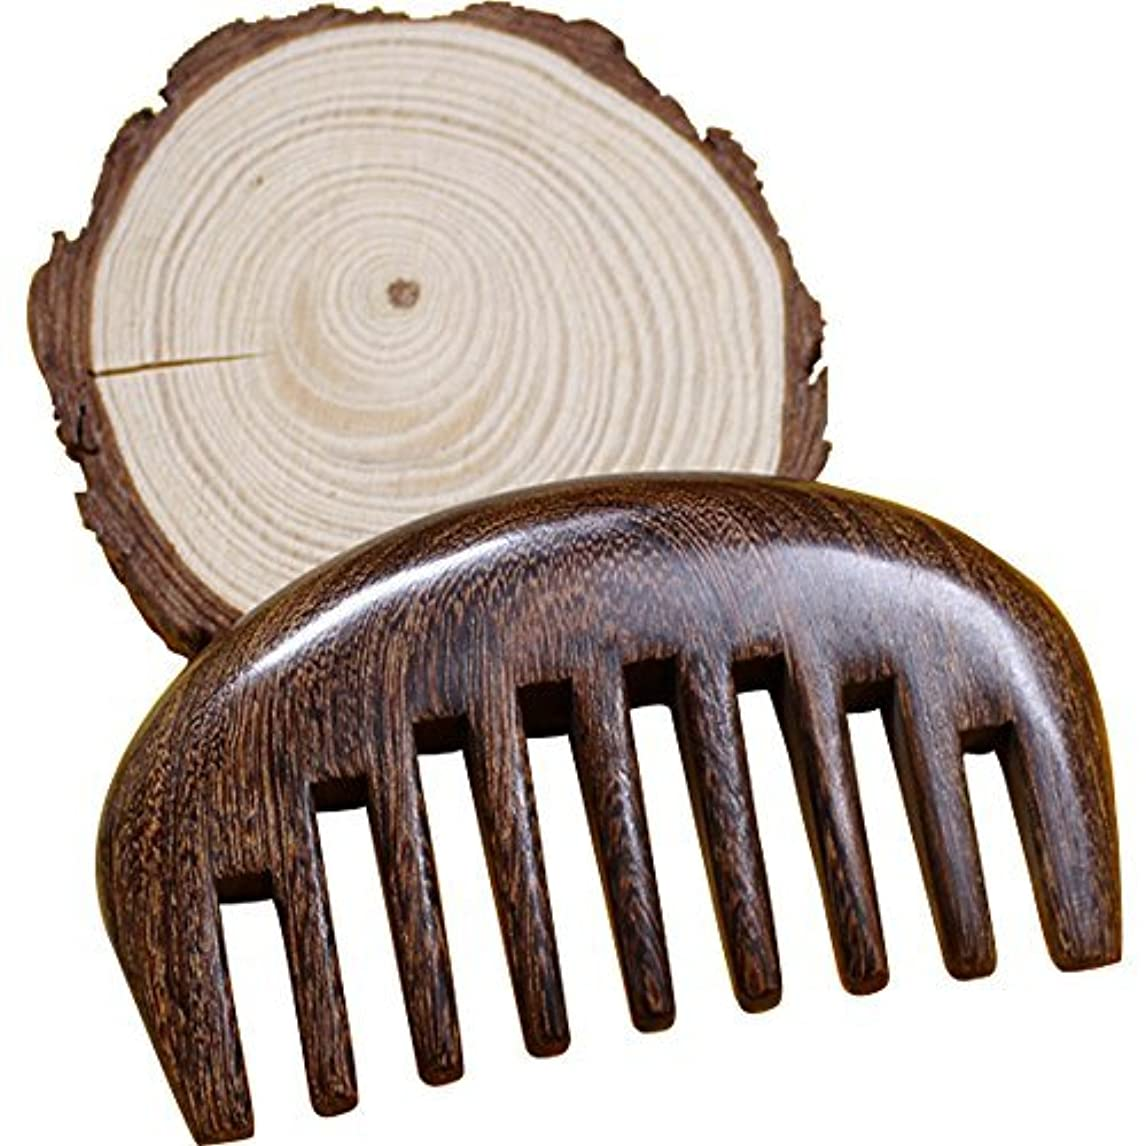 Wood comb Wooden wide tooth hair comb detangler brush -Anti Static Sandalwood Scent handmad with gift package...